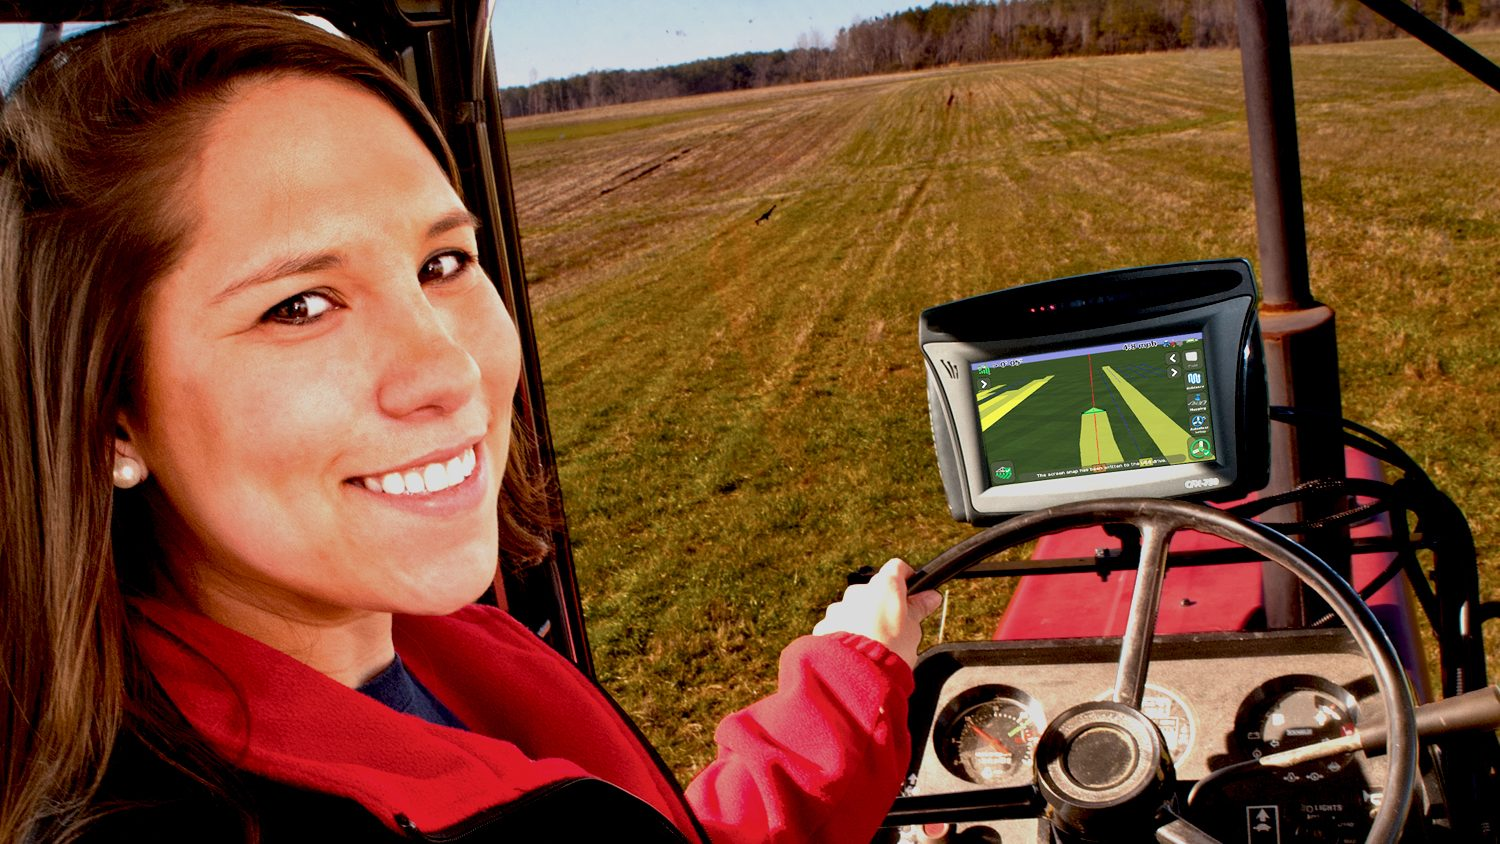 Female farmer driving a tractor in a field.